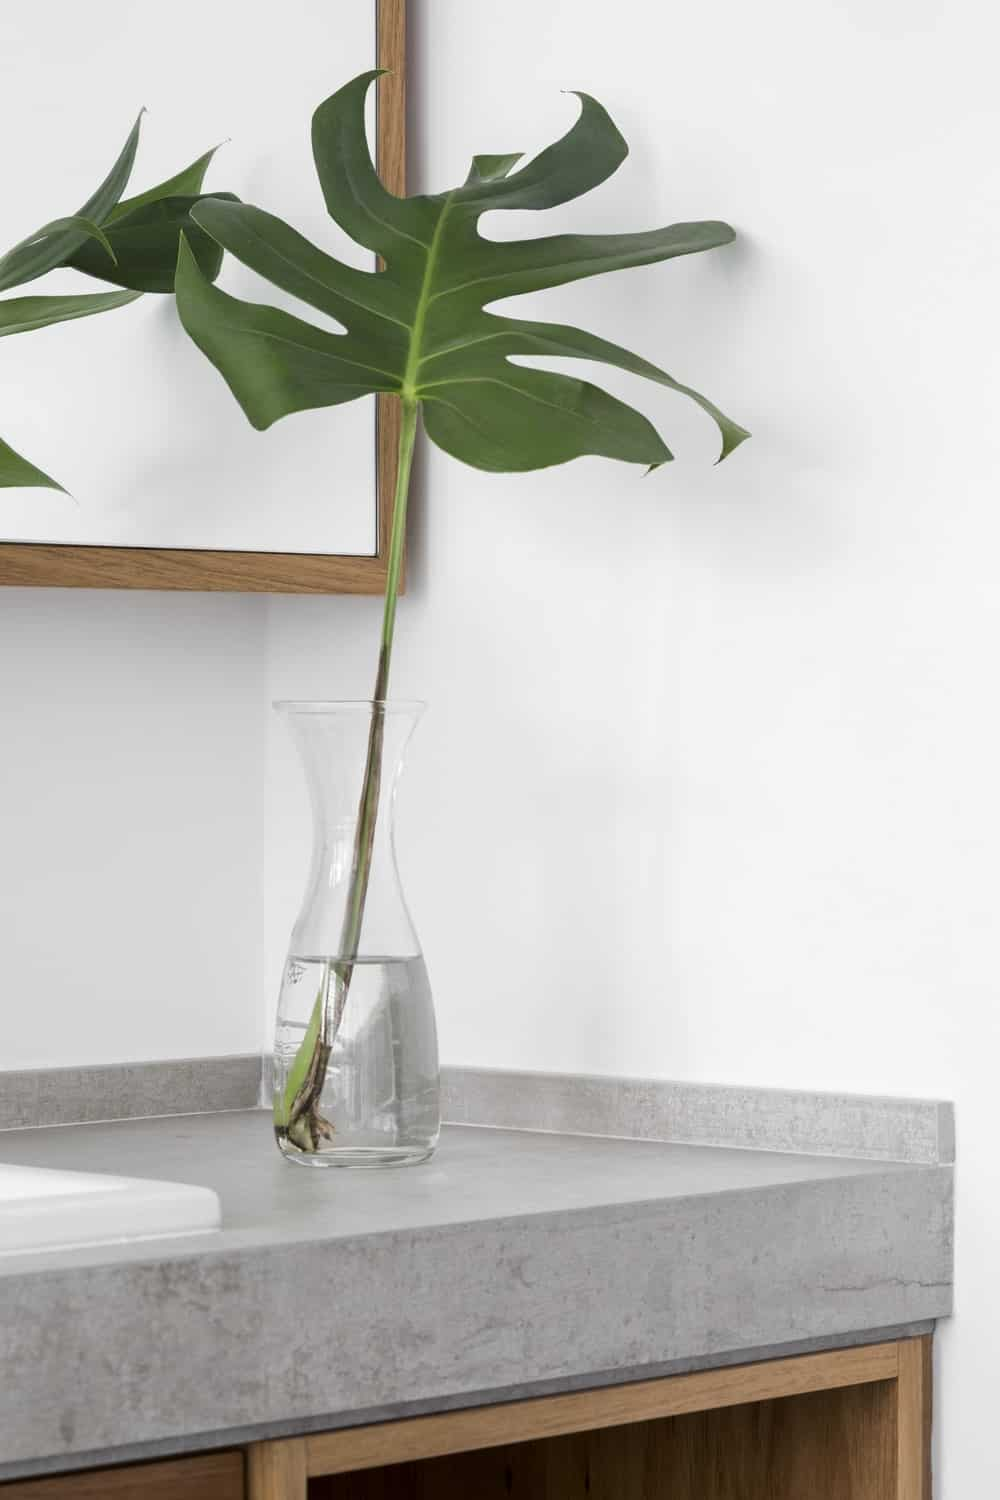 This is a closer look at the countertop of the vanity adorned with a vase with a plant.